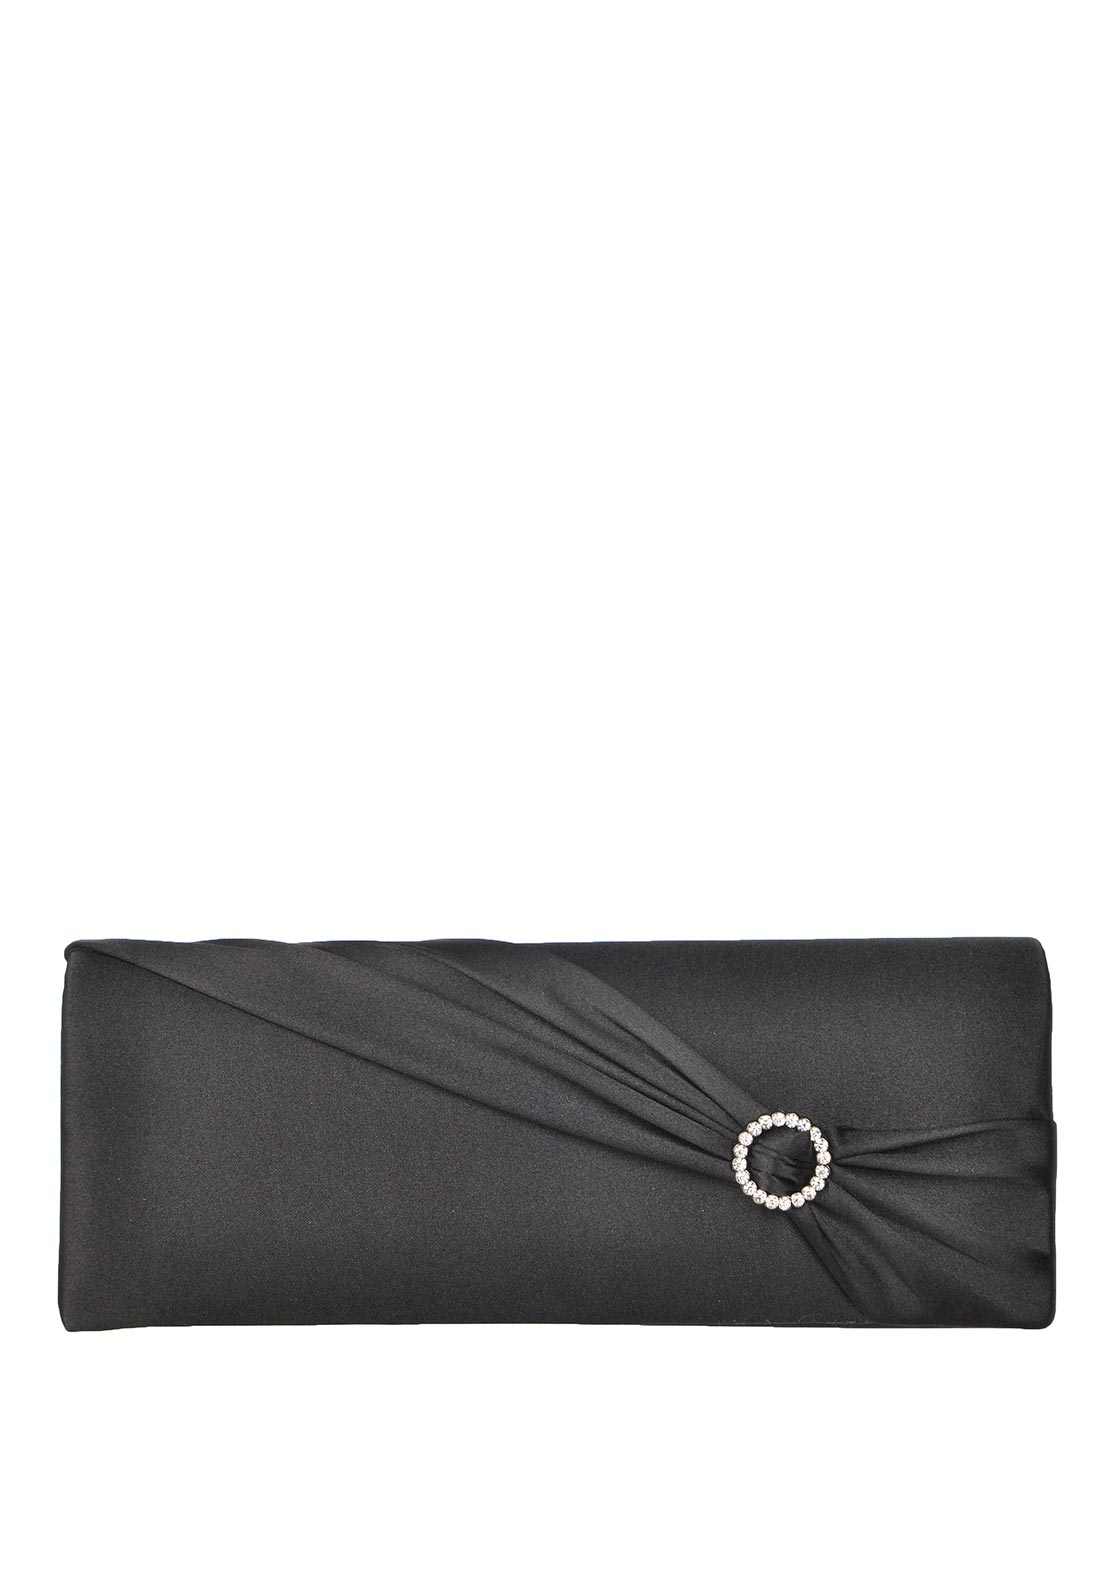 Barino Ruched Satin Clutch Bag, Black